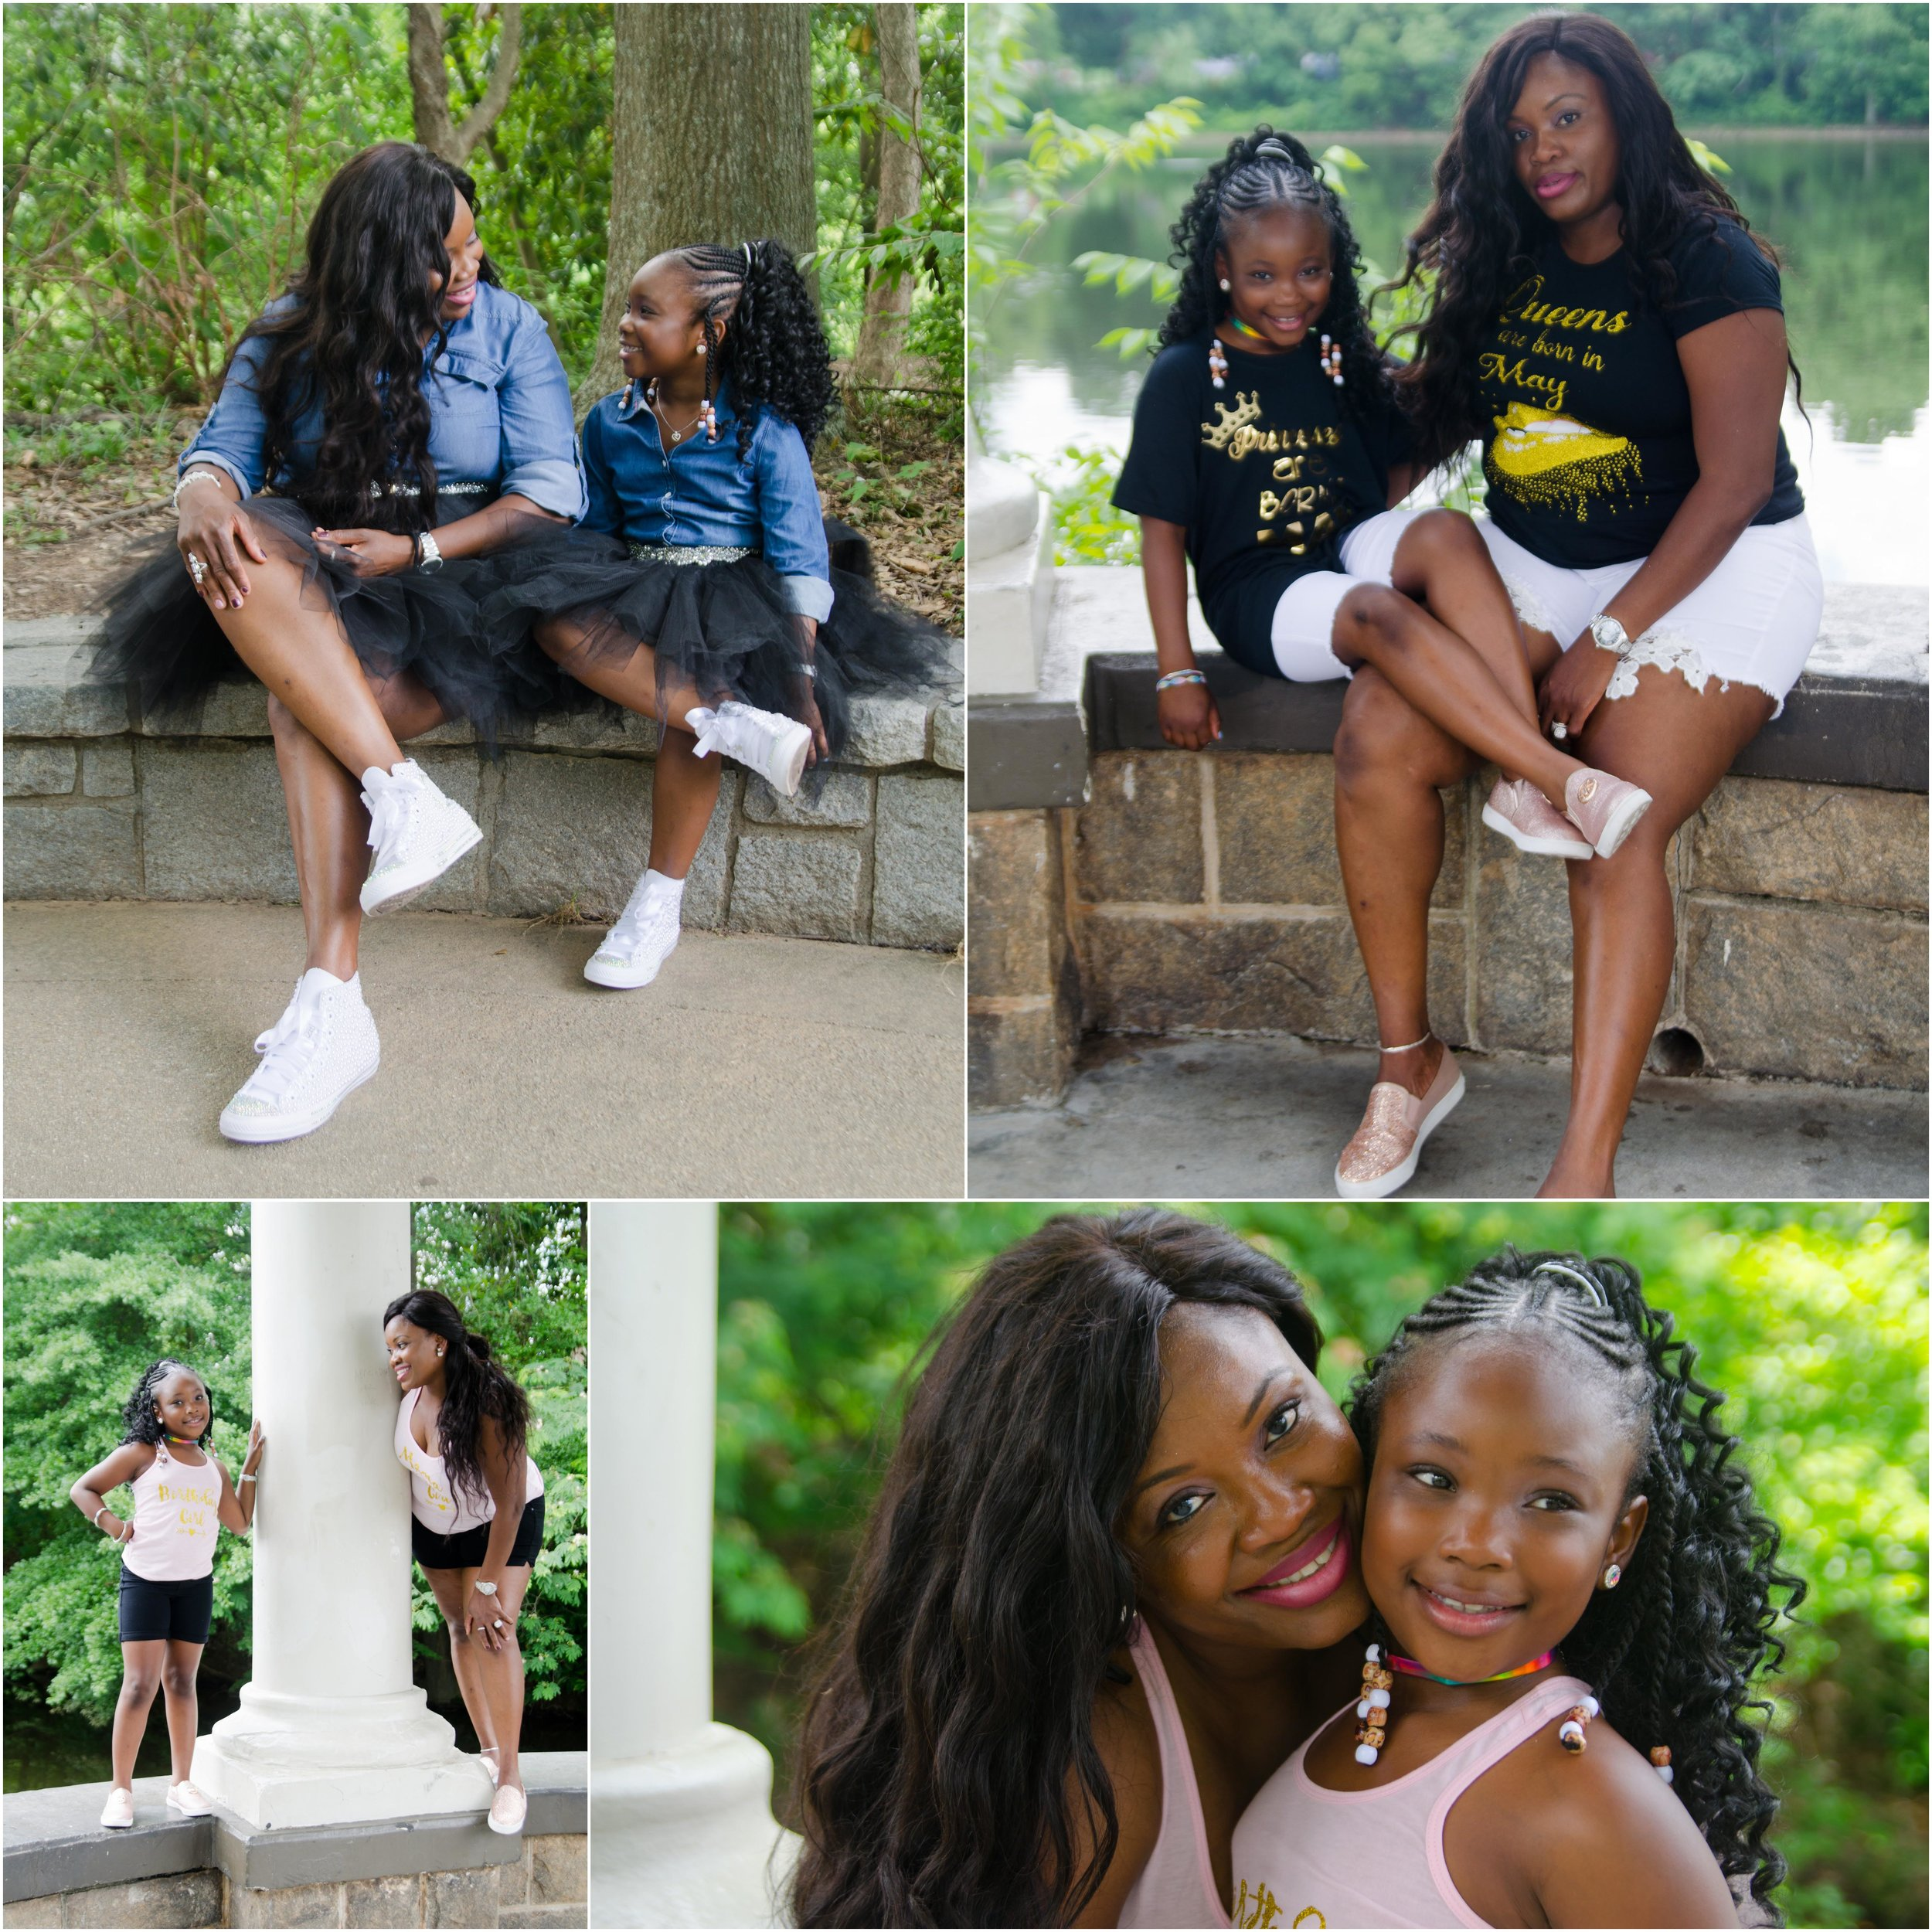 Maddy & Me Birthday Photo Session - May 2018